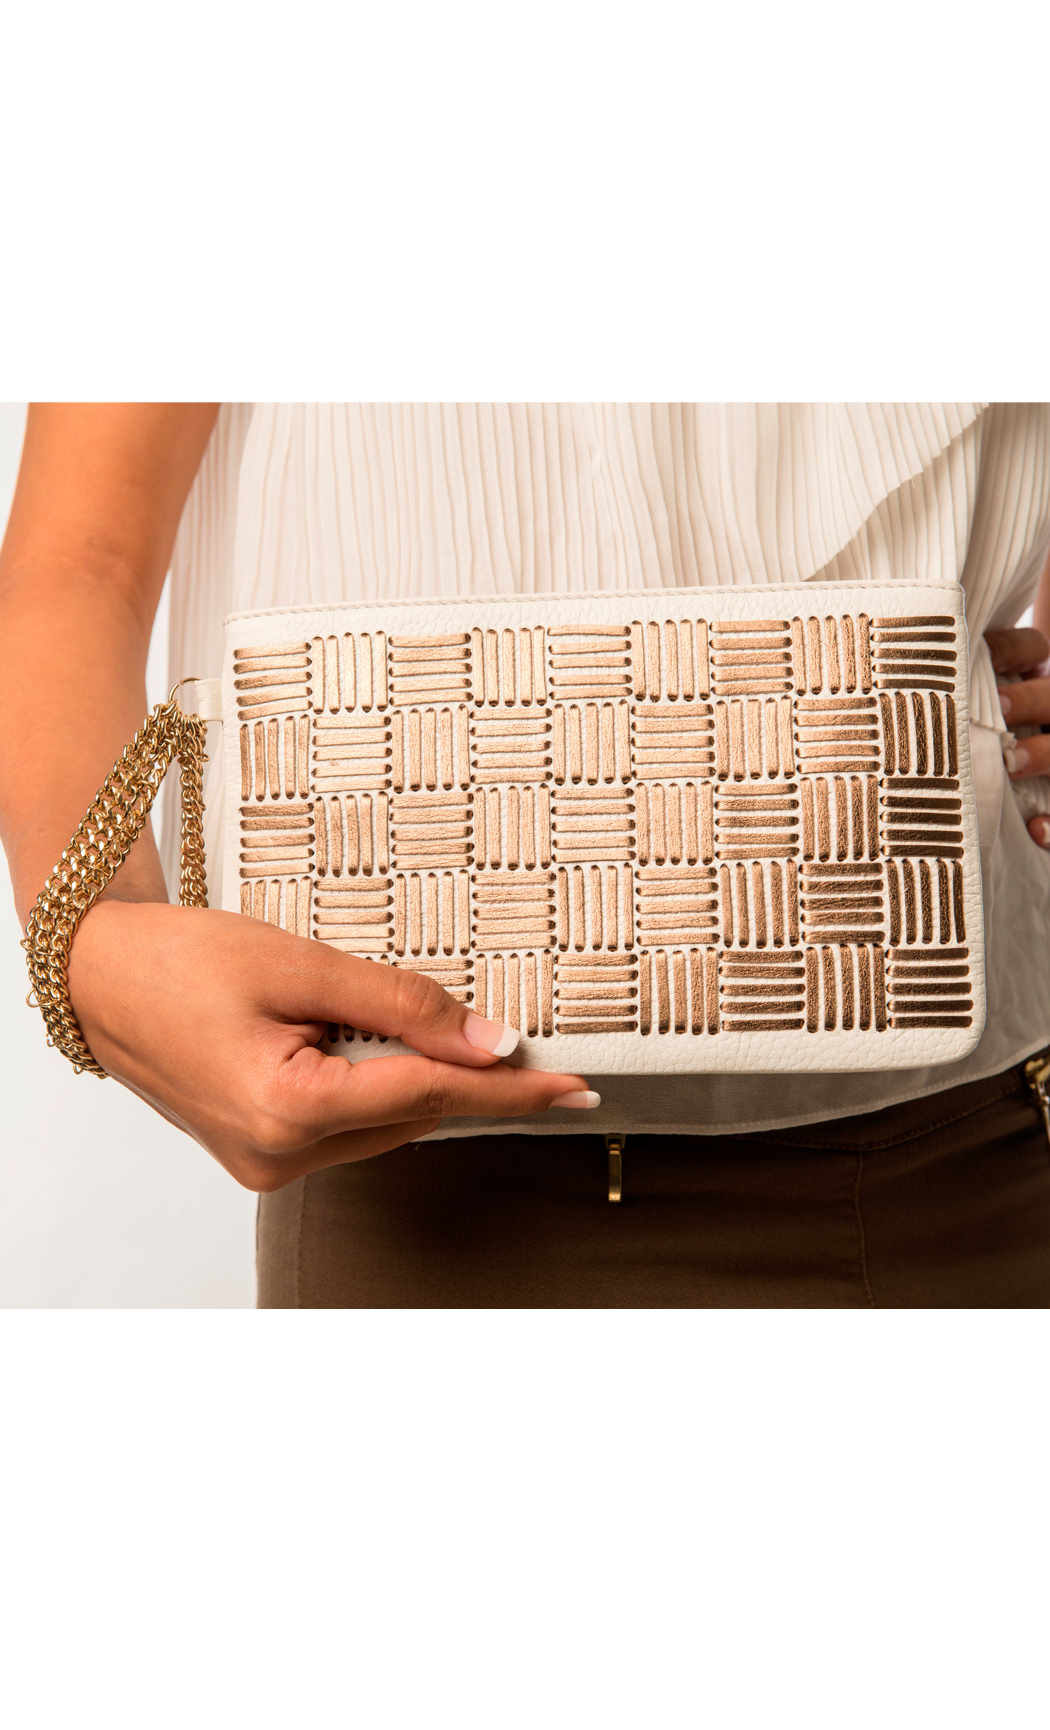 Symphony and Symmetry Two Direction Weave Wristlet in Bronze-White. Buy Online